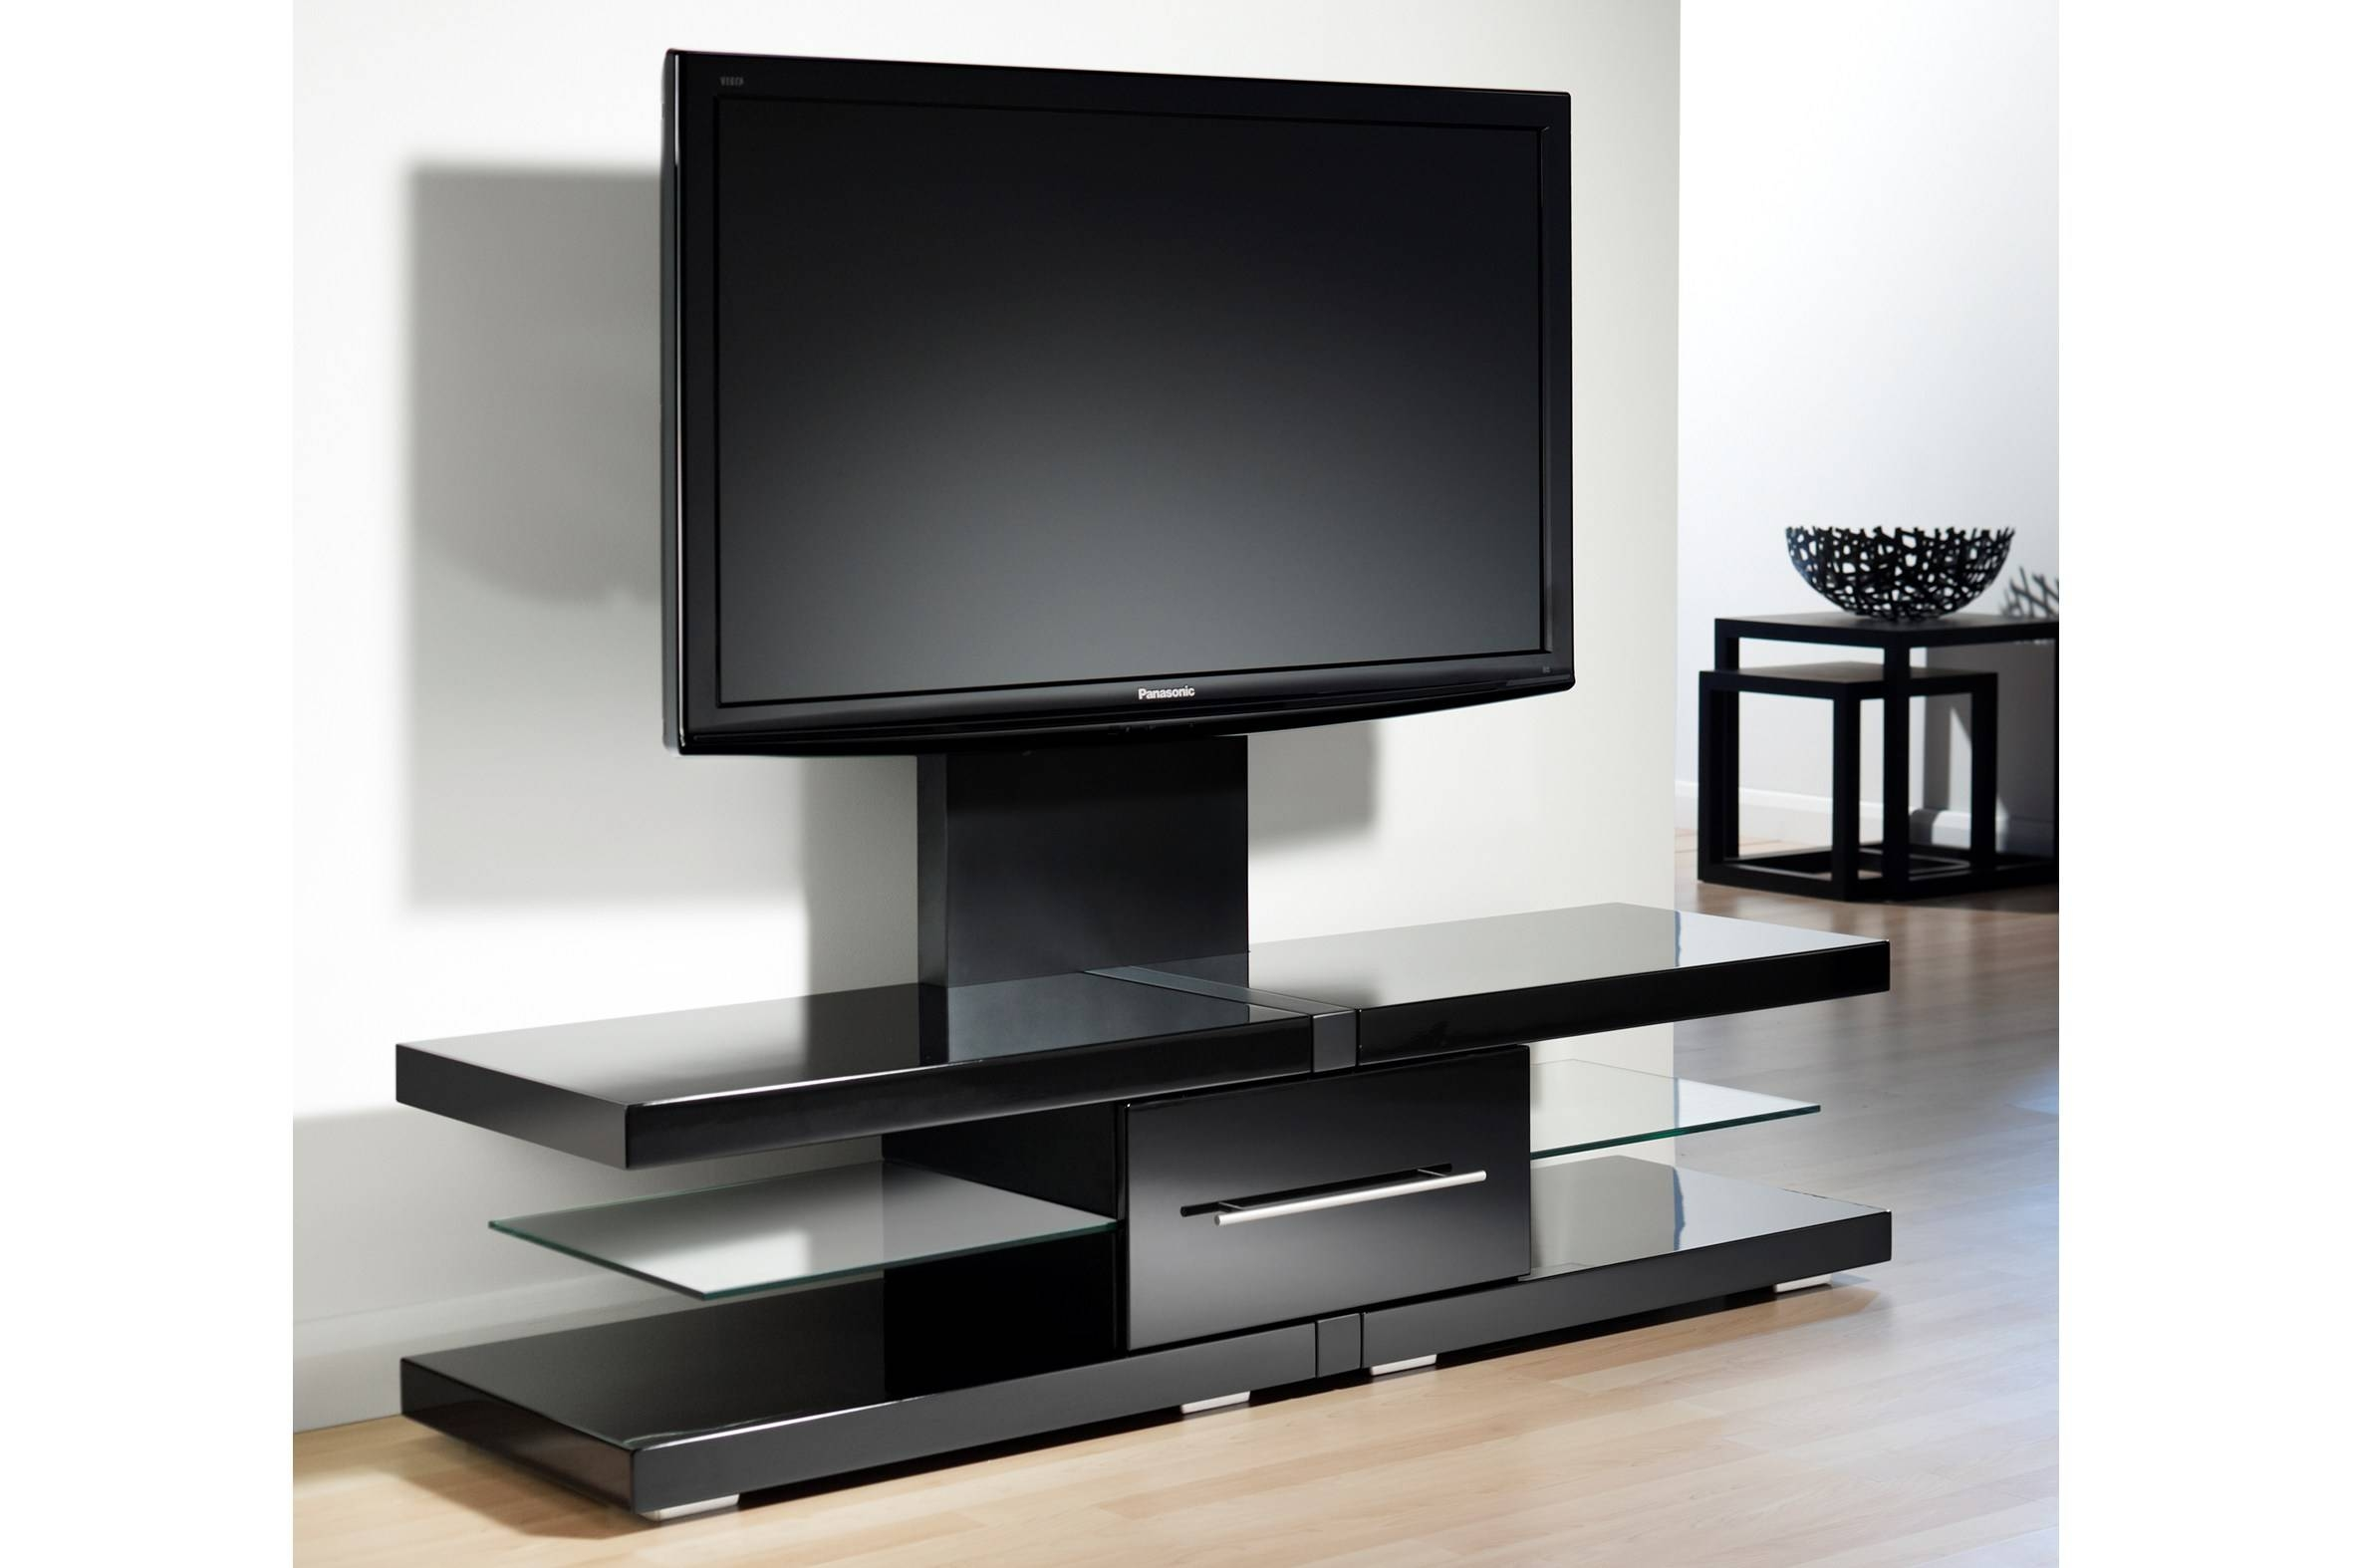 Unique Contemporary Glass Tv Stands 19 On Modern House With within Unique Tv Stands (Image 10 of 15)